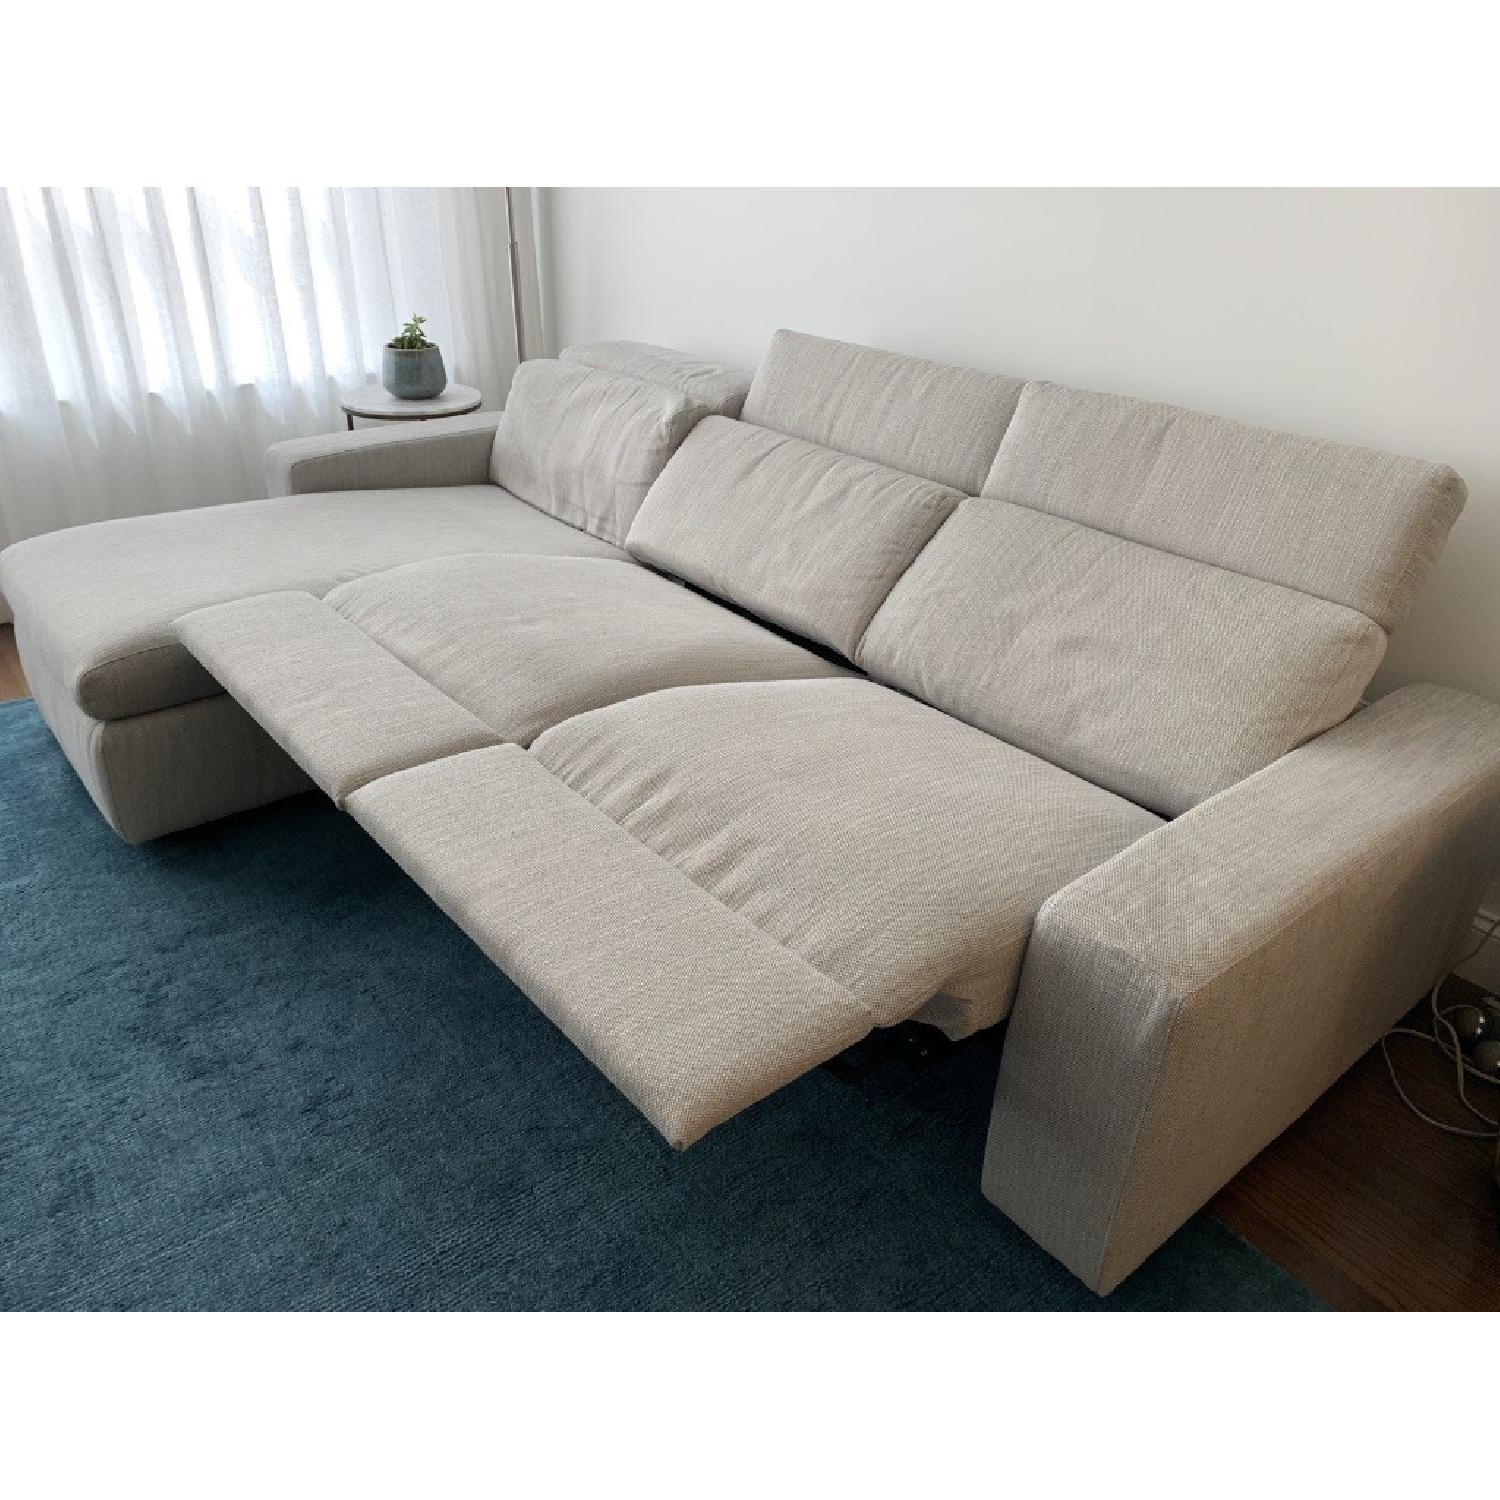 West Elm Enzo Electric Reclining 3 Sectional Sofa W Chaise